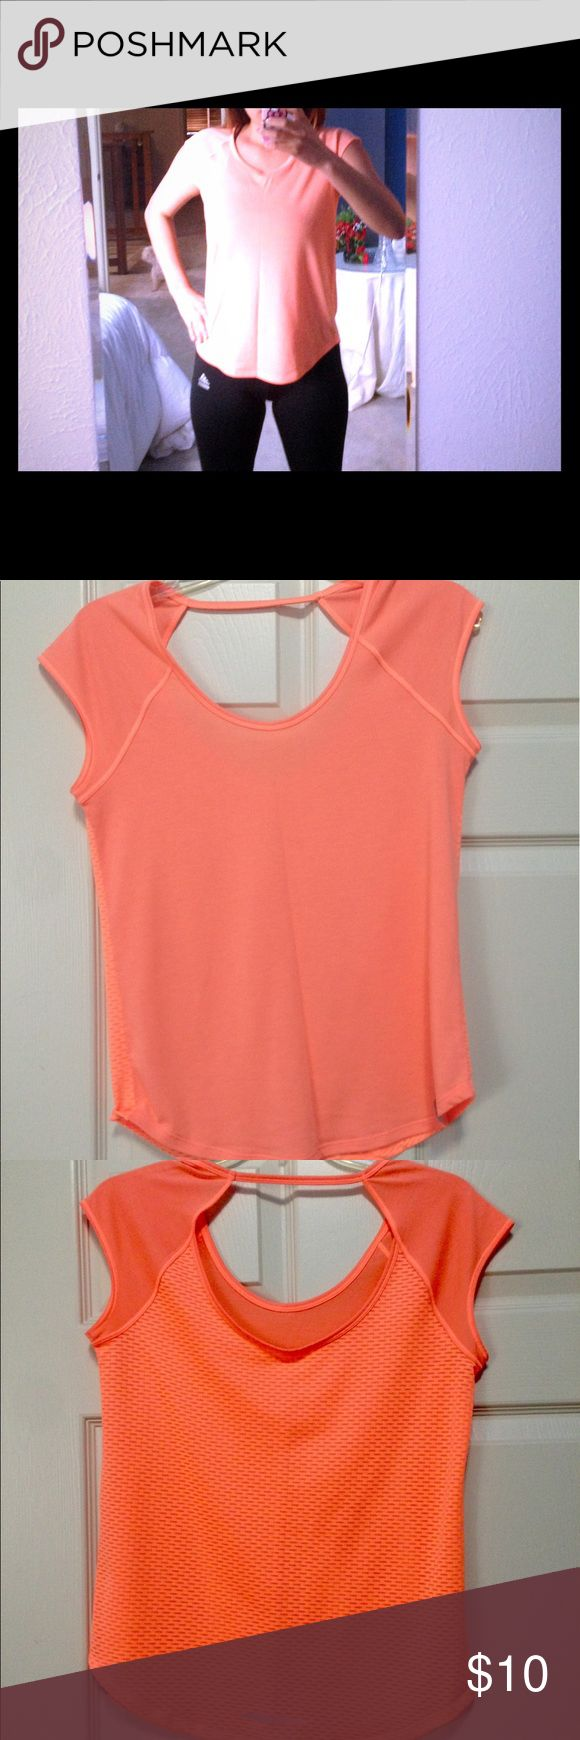 Orange Workout shirt Orange Under Armour workout shirt. It is sleeveless and smooth textured in the front and ribbed in the back with a string that goes across the back. Worn a few times, it is a small but I cut the tag out because it kept poking me in the back. Under Armour Tops Tank Tops